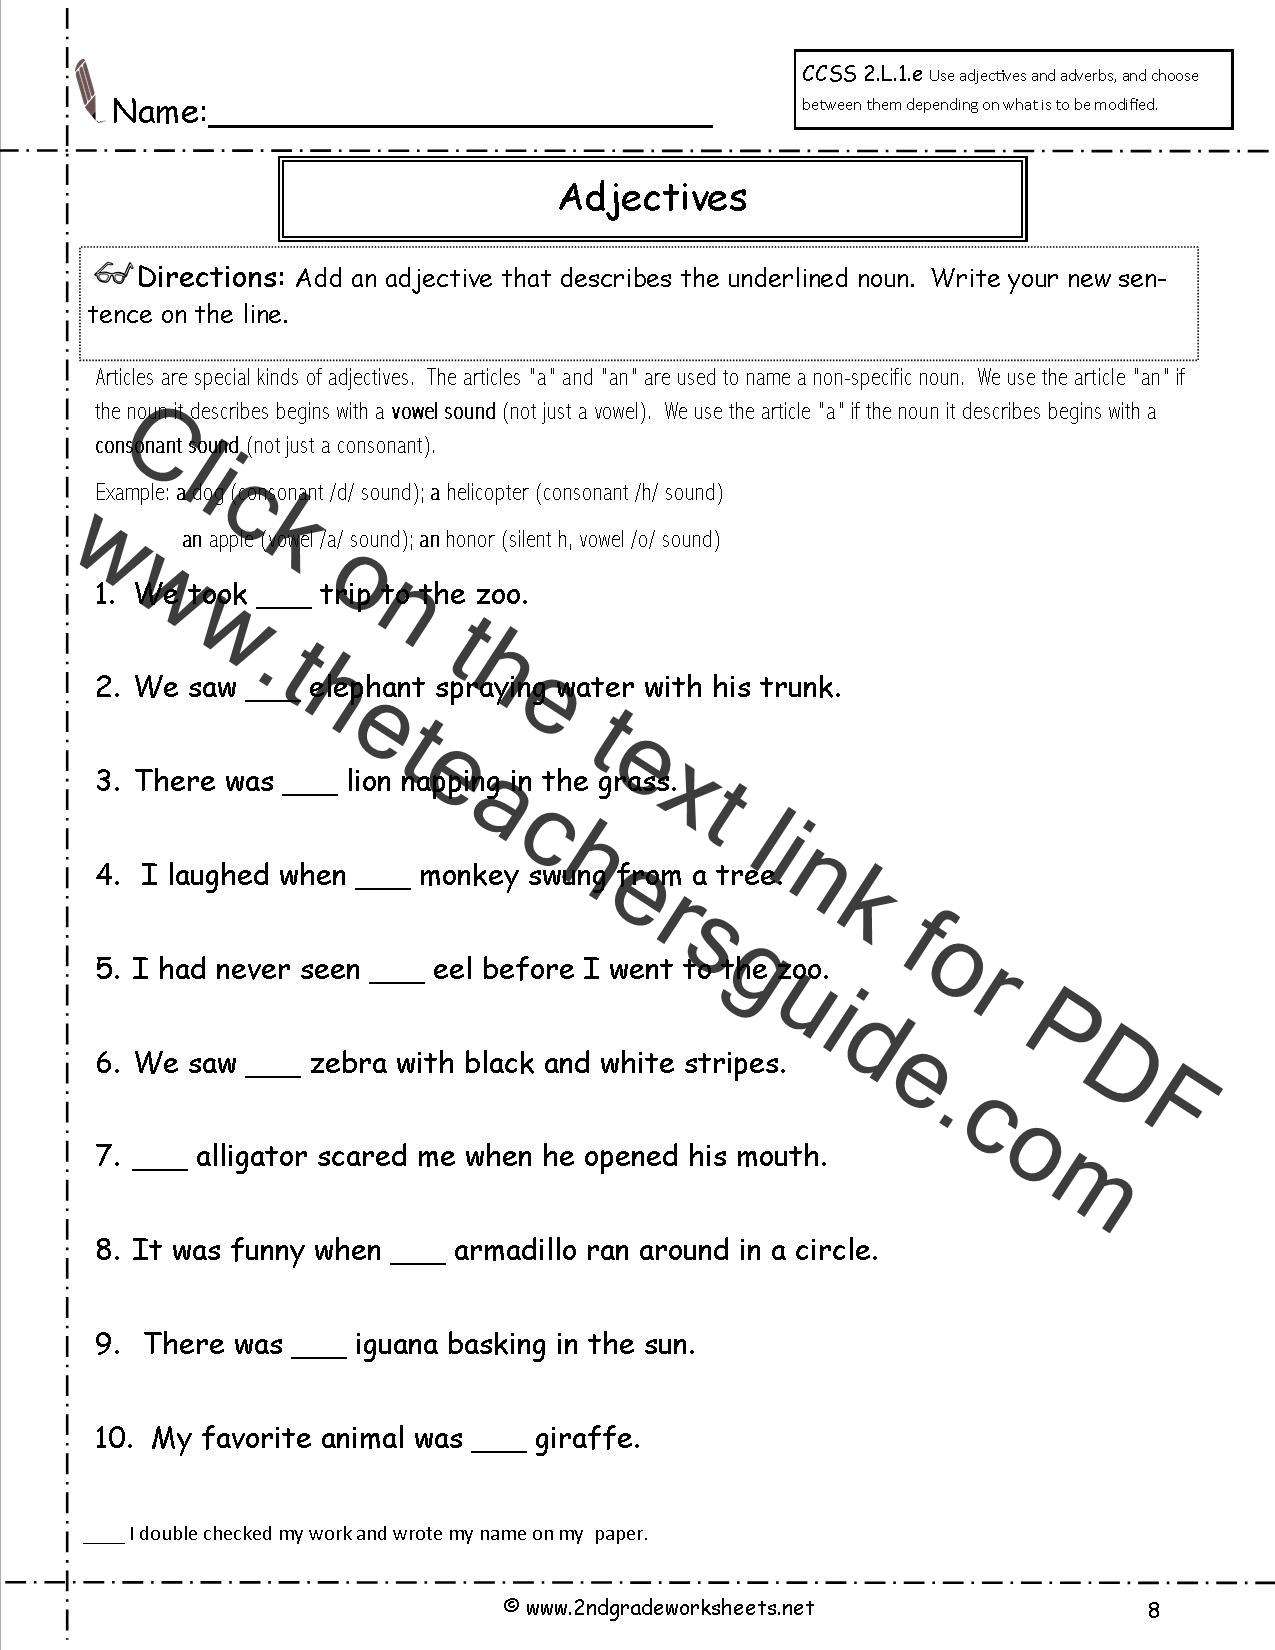 Printables 2nd Grade Writing Worksheets Free Printable free languagegrammar worksheets and printouts adjectives worksheets